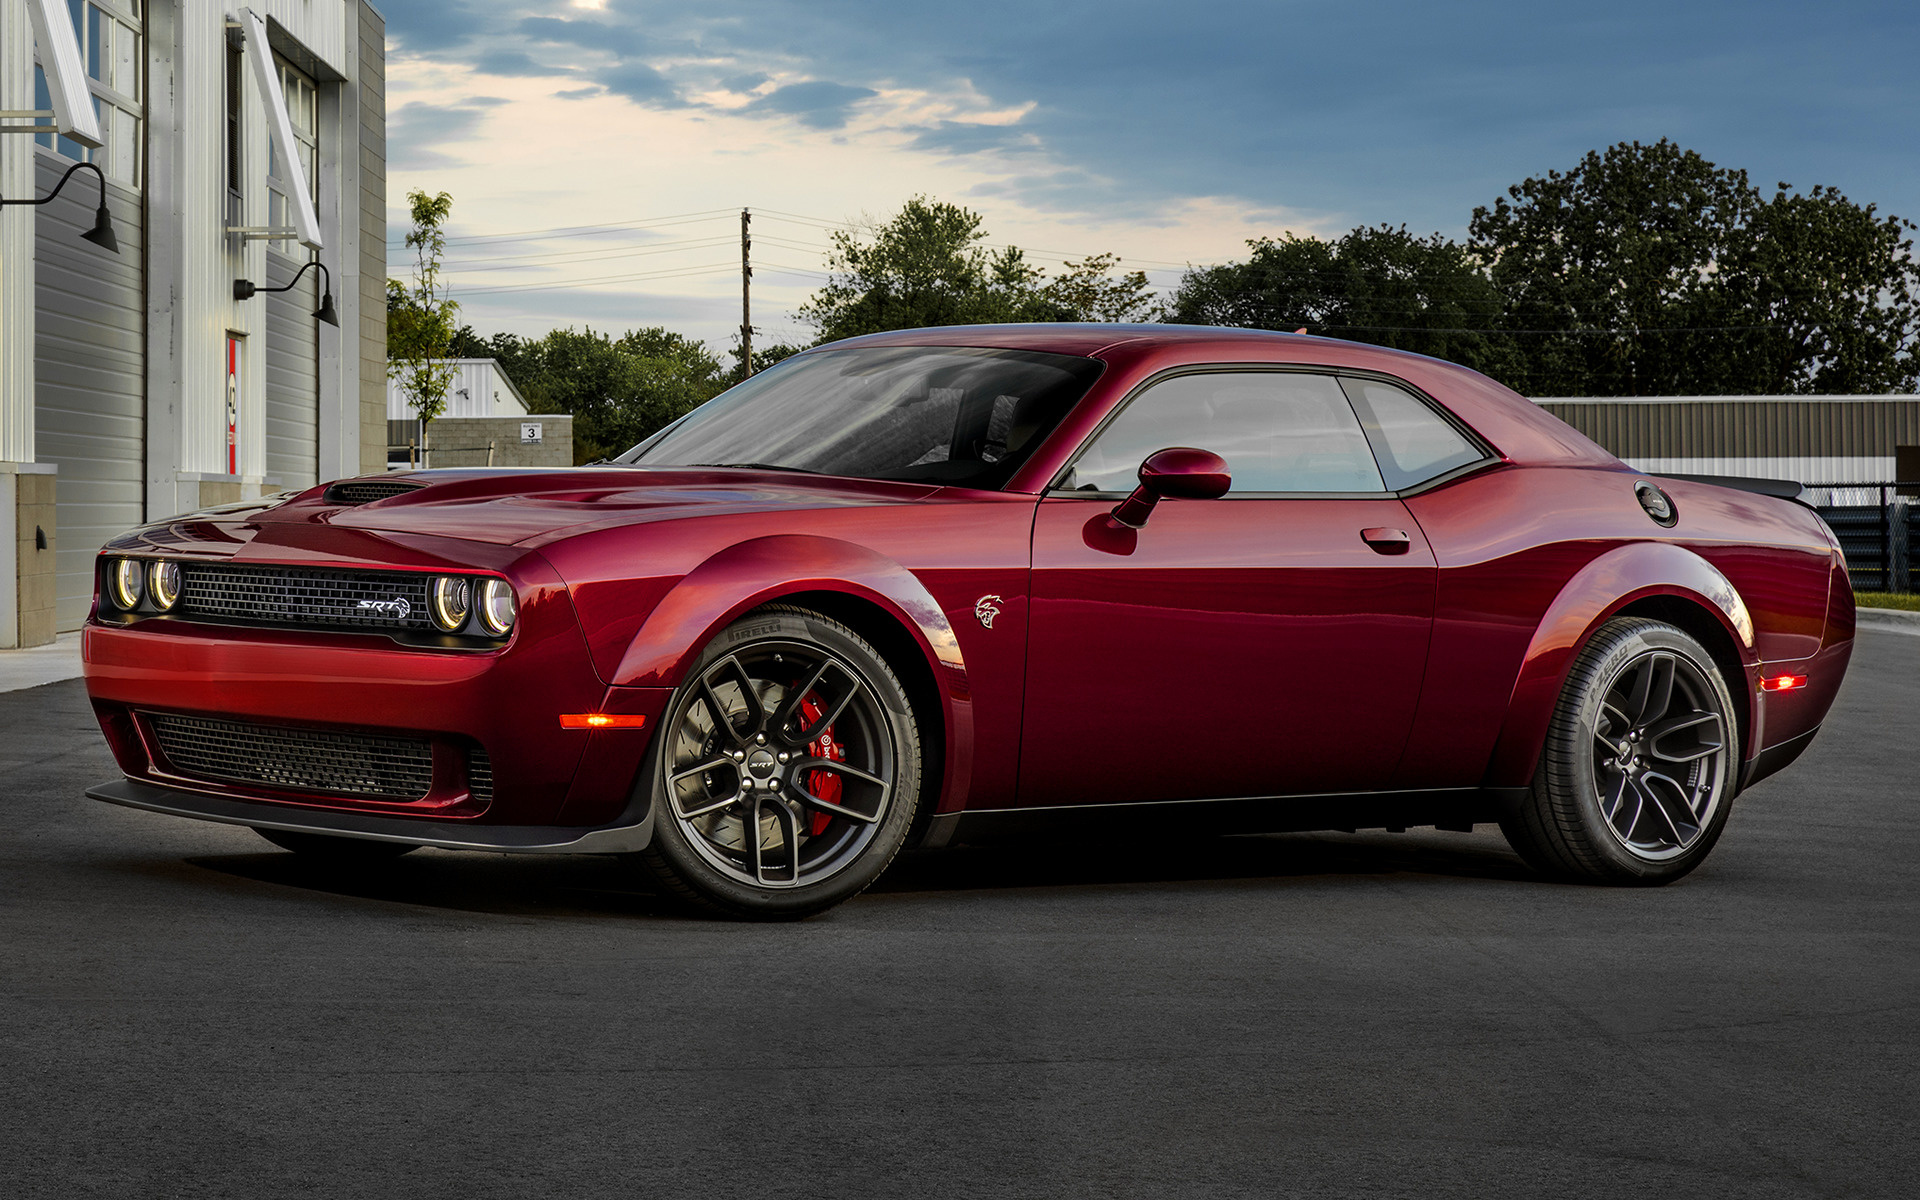 Dodge Challenger SRT Hellcat Widebody 2018 Wallpapers And HD